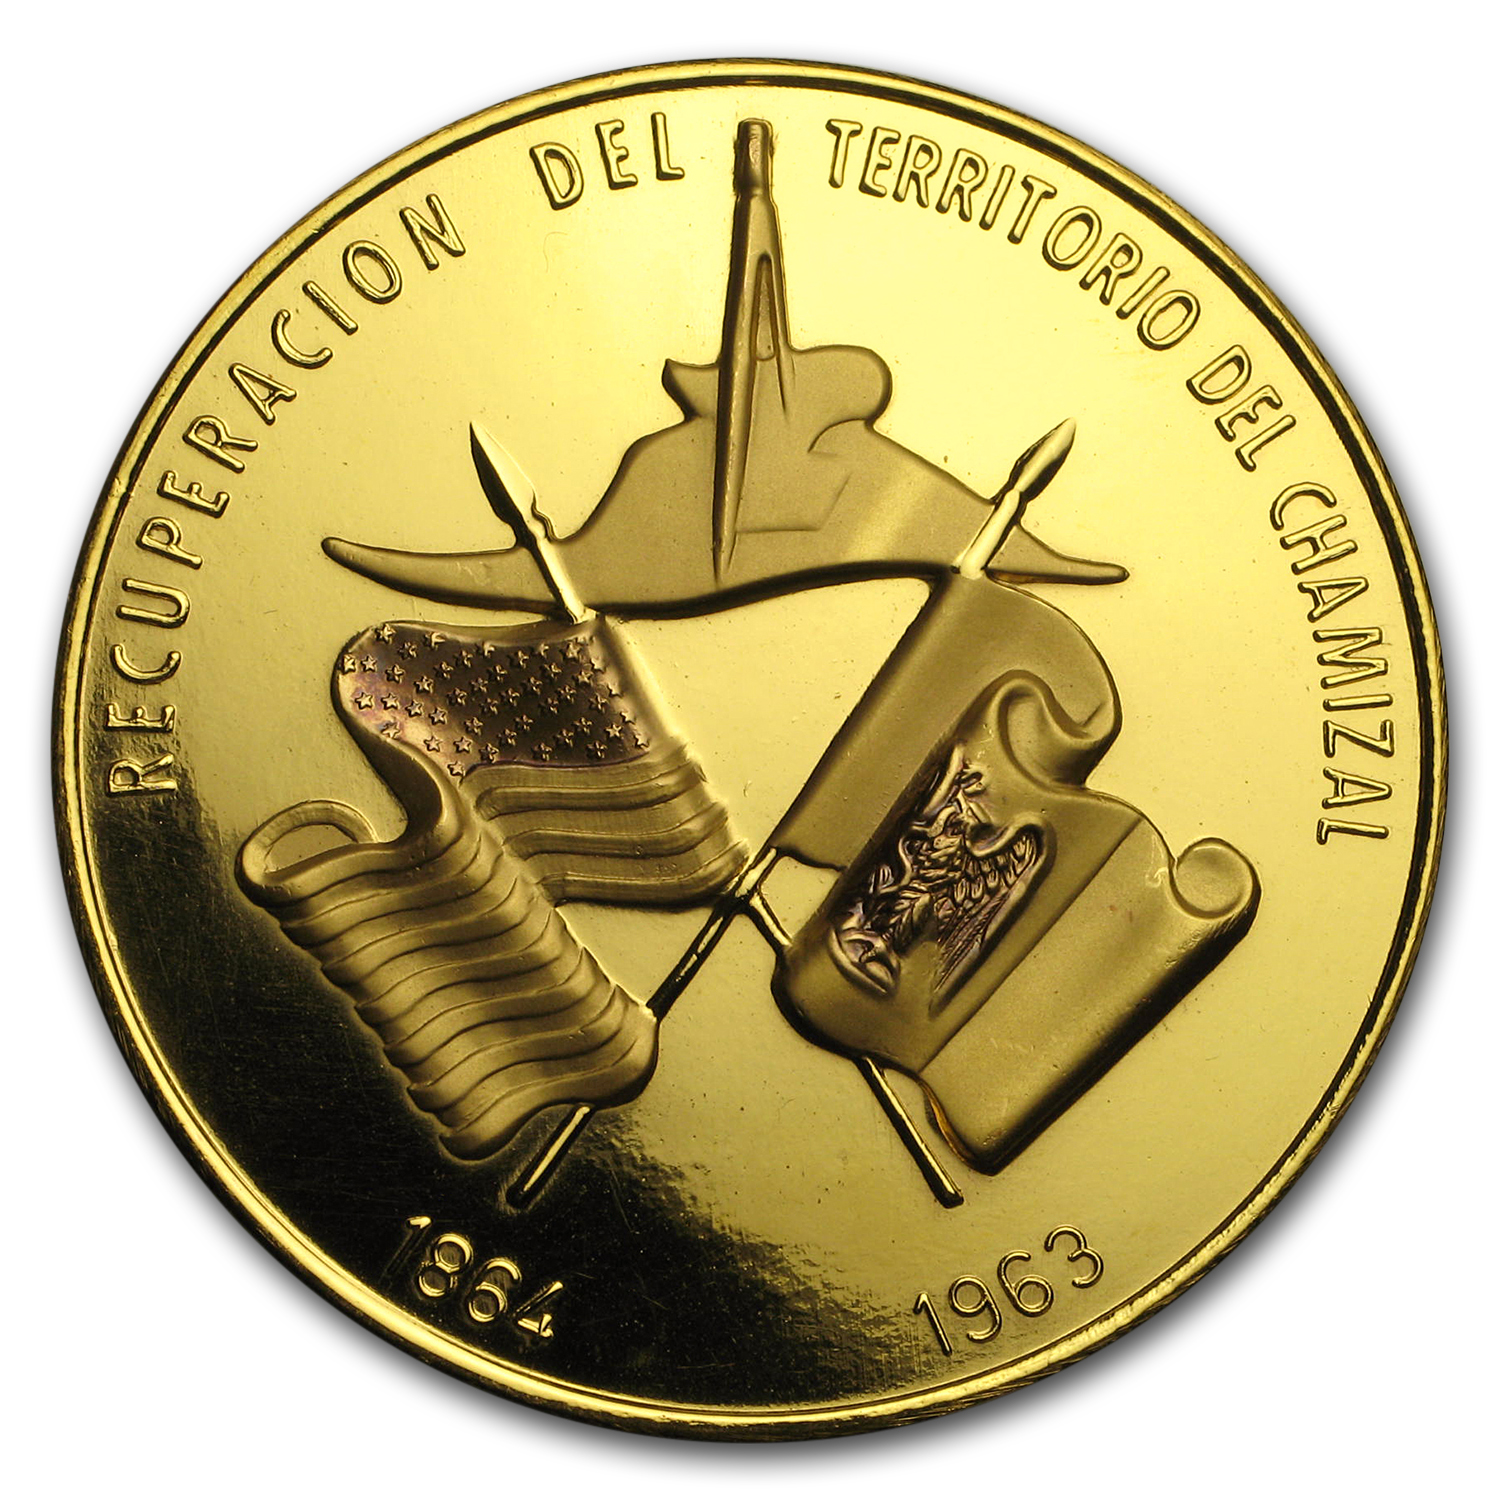 1963 Mexico Gold Recovery of Chamizal Territory Medal BU (1.8 oz)